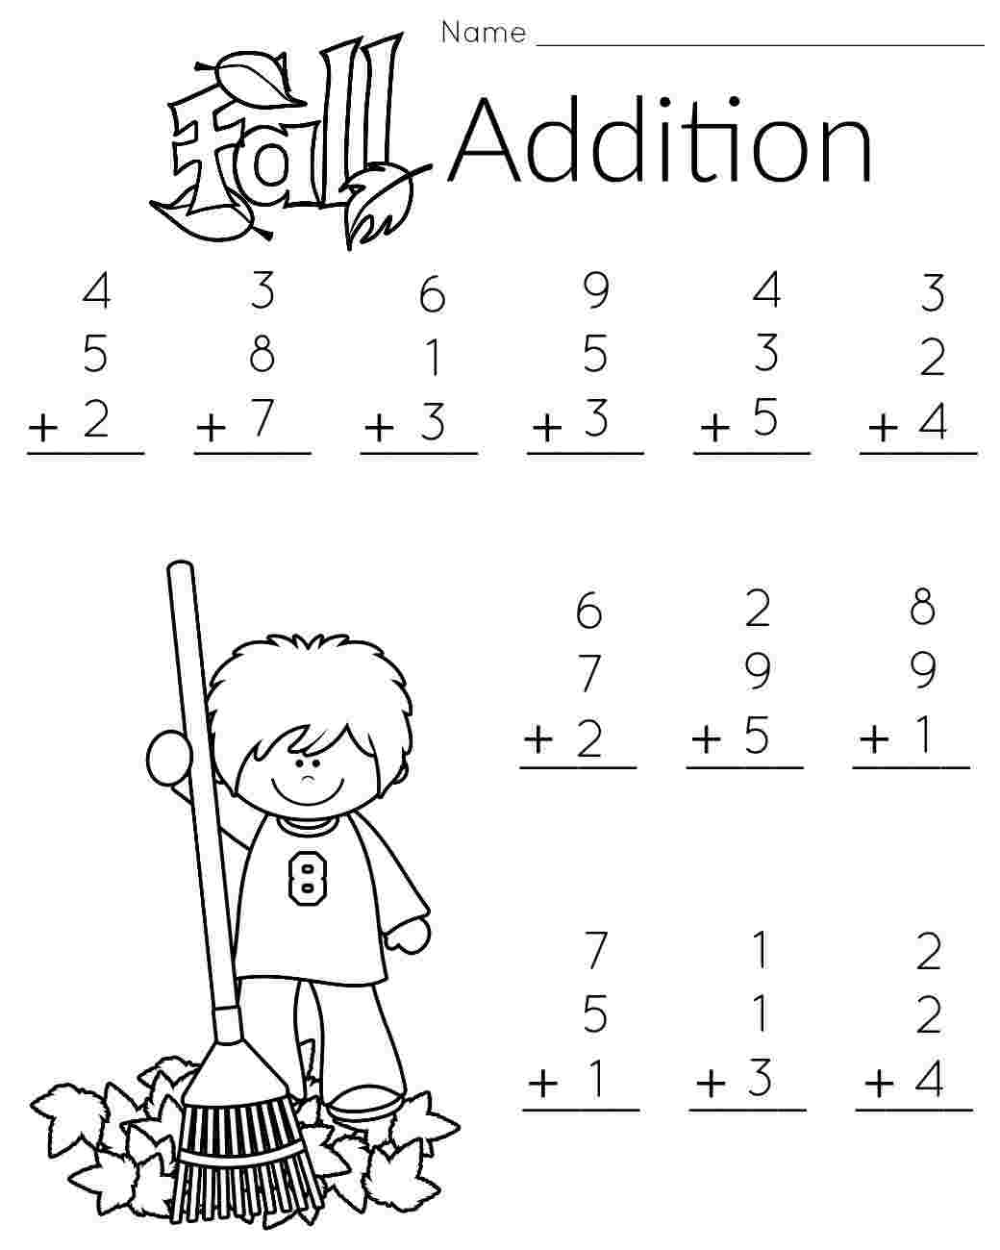 Fun Printable Math Worksheets For 1st Graders First Grade Math Activities A Math Addition Worksheets First Grade Math Worksheets Free Printable Math Worksheets